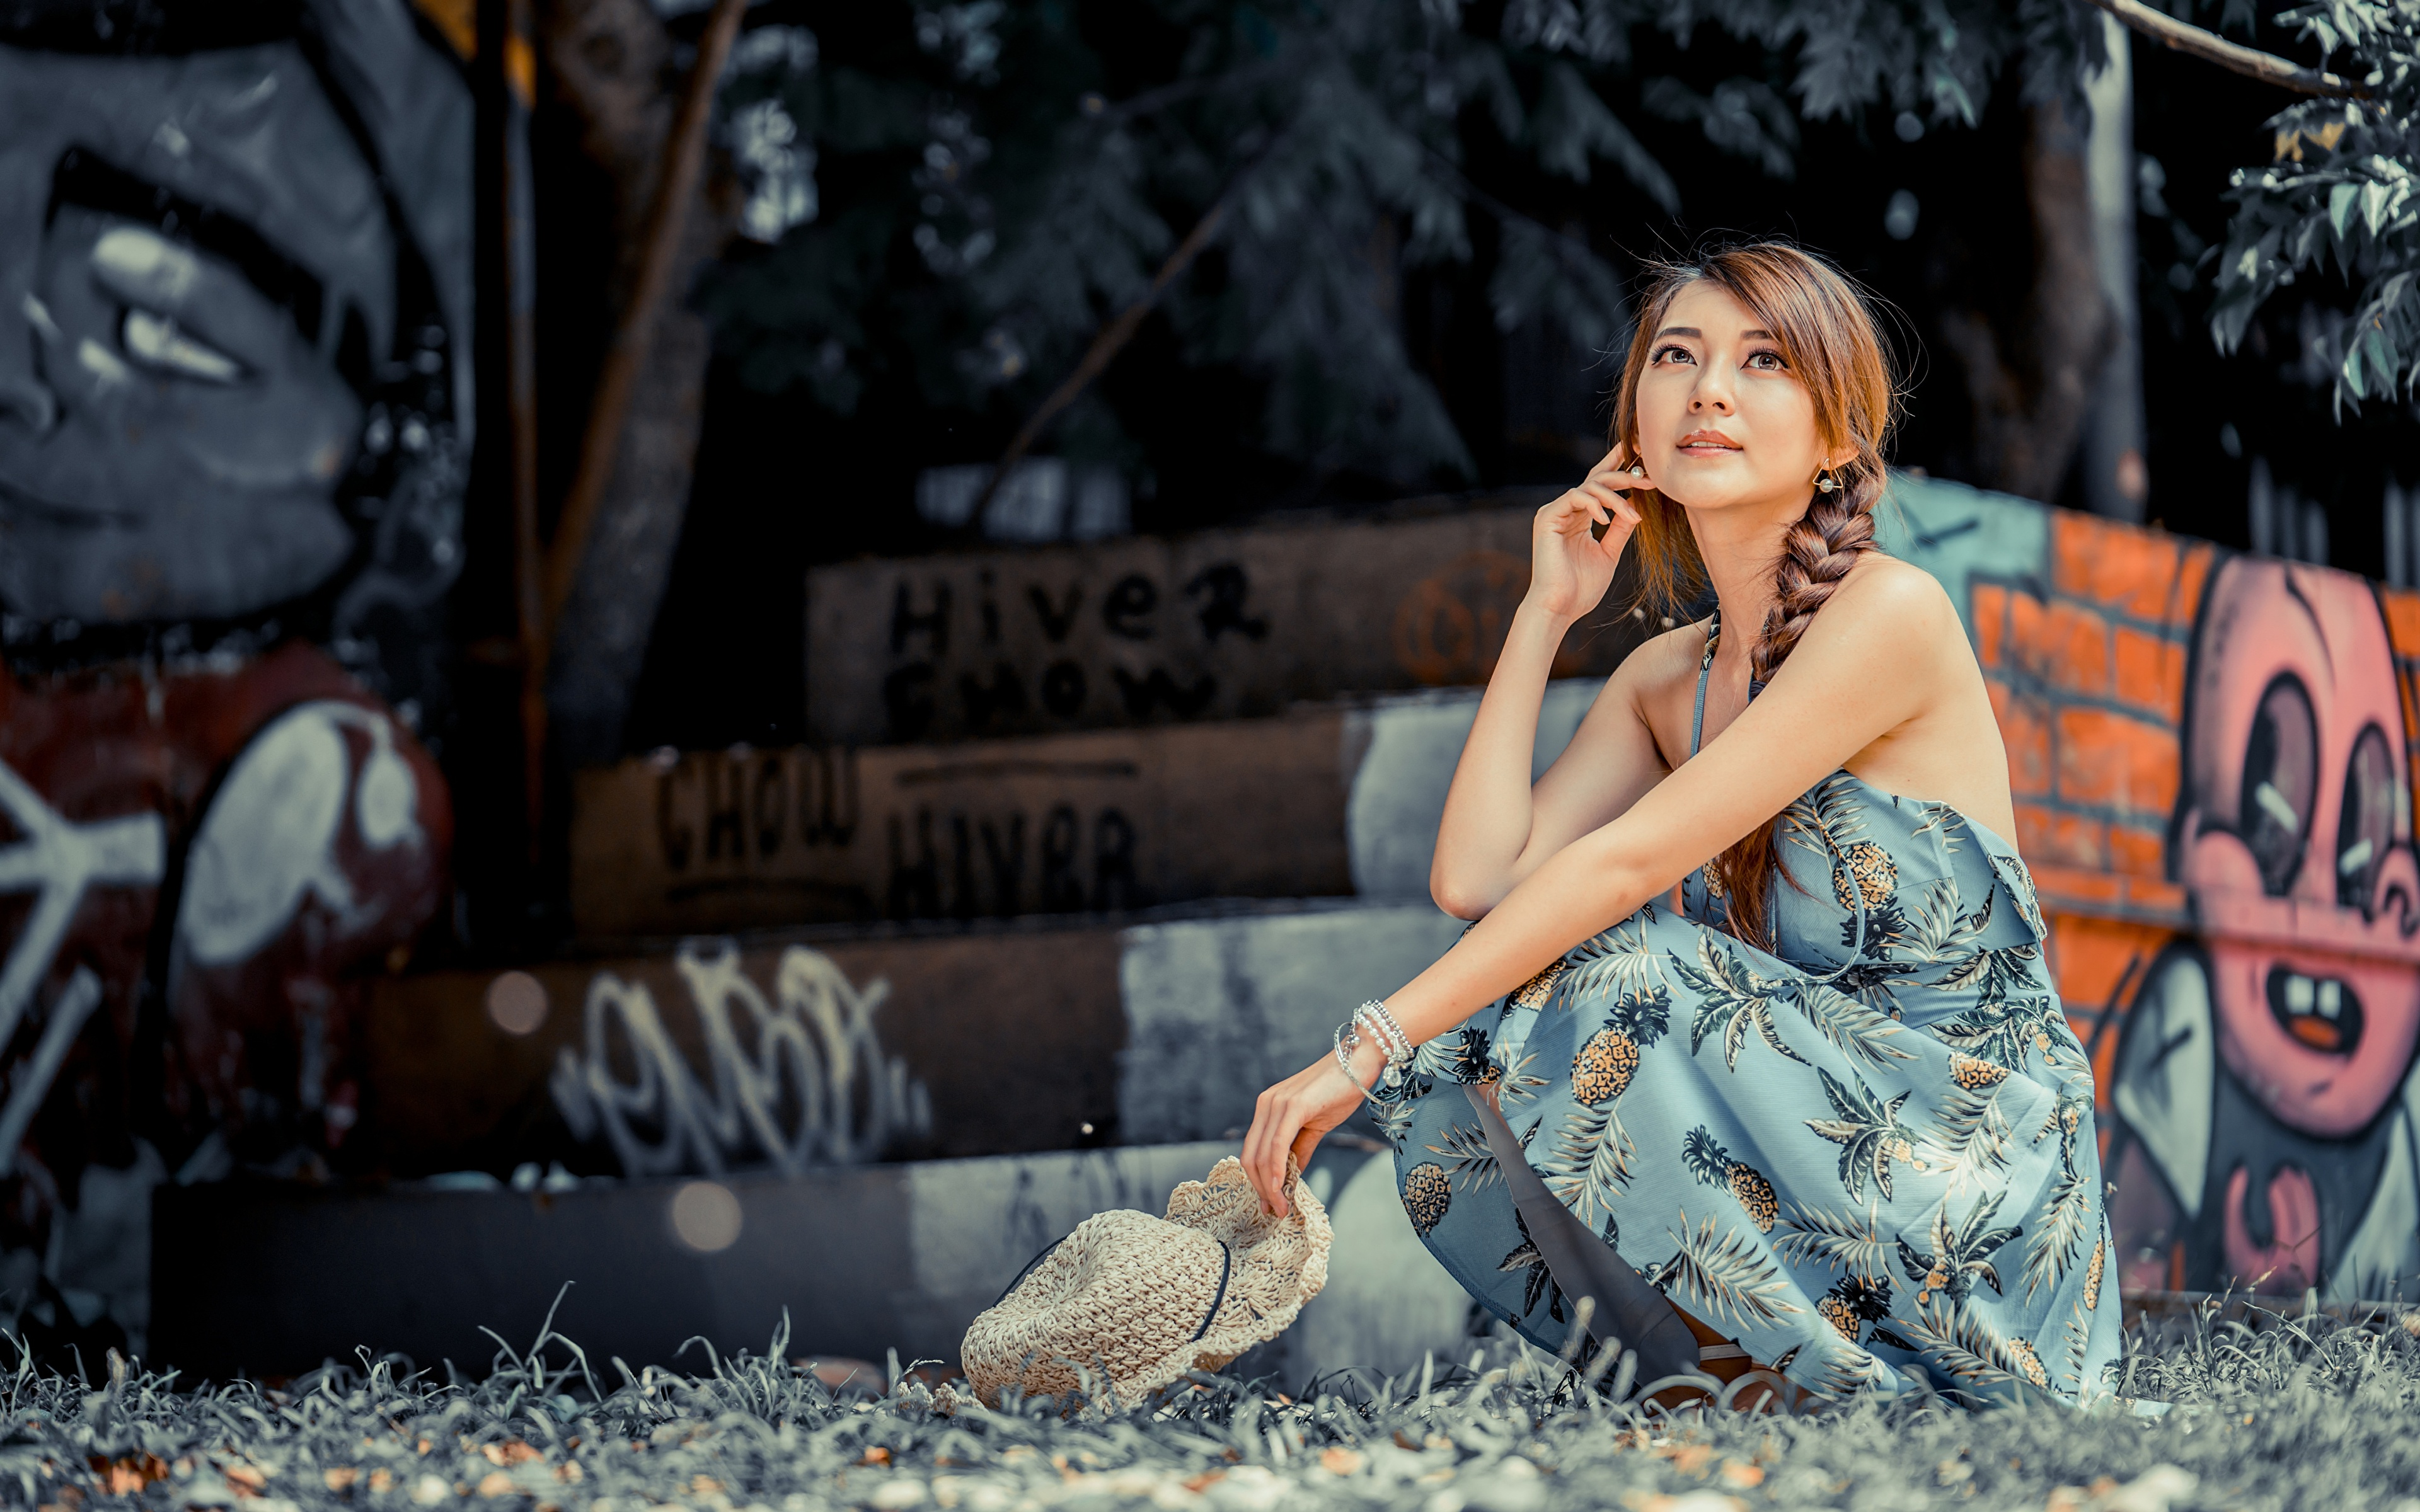 Photos Brown haired Bokeh Hat Girls Asiatic sit Hands frock 3840x2400 blurred background female young woman Asian Sitting gown Dress